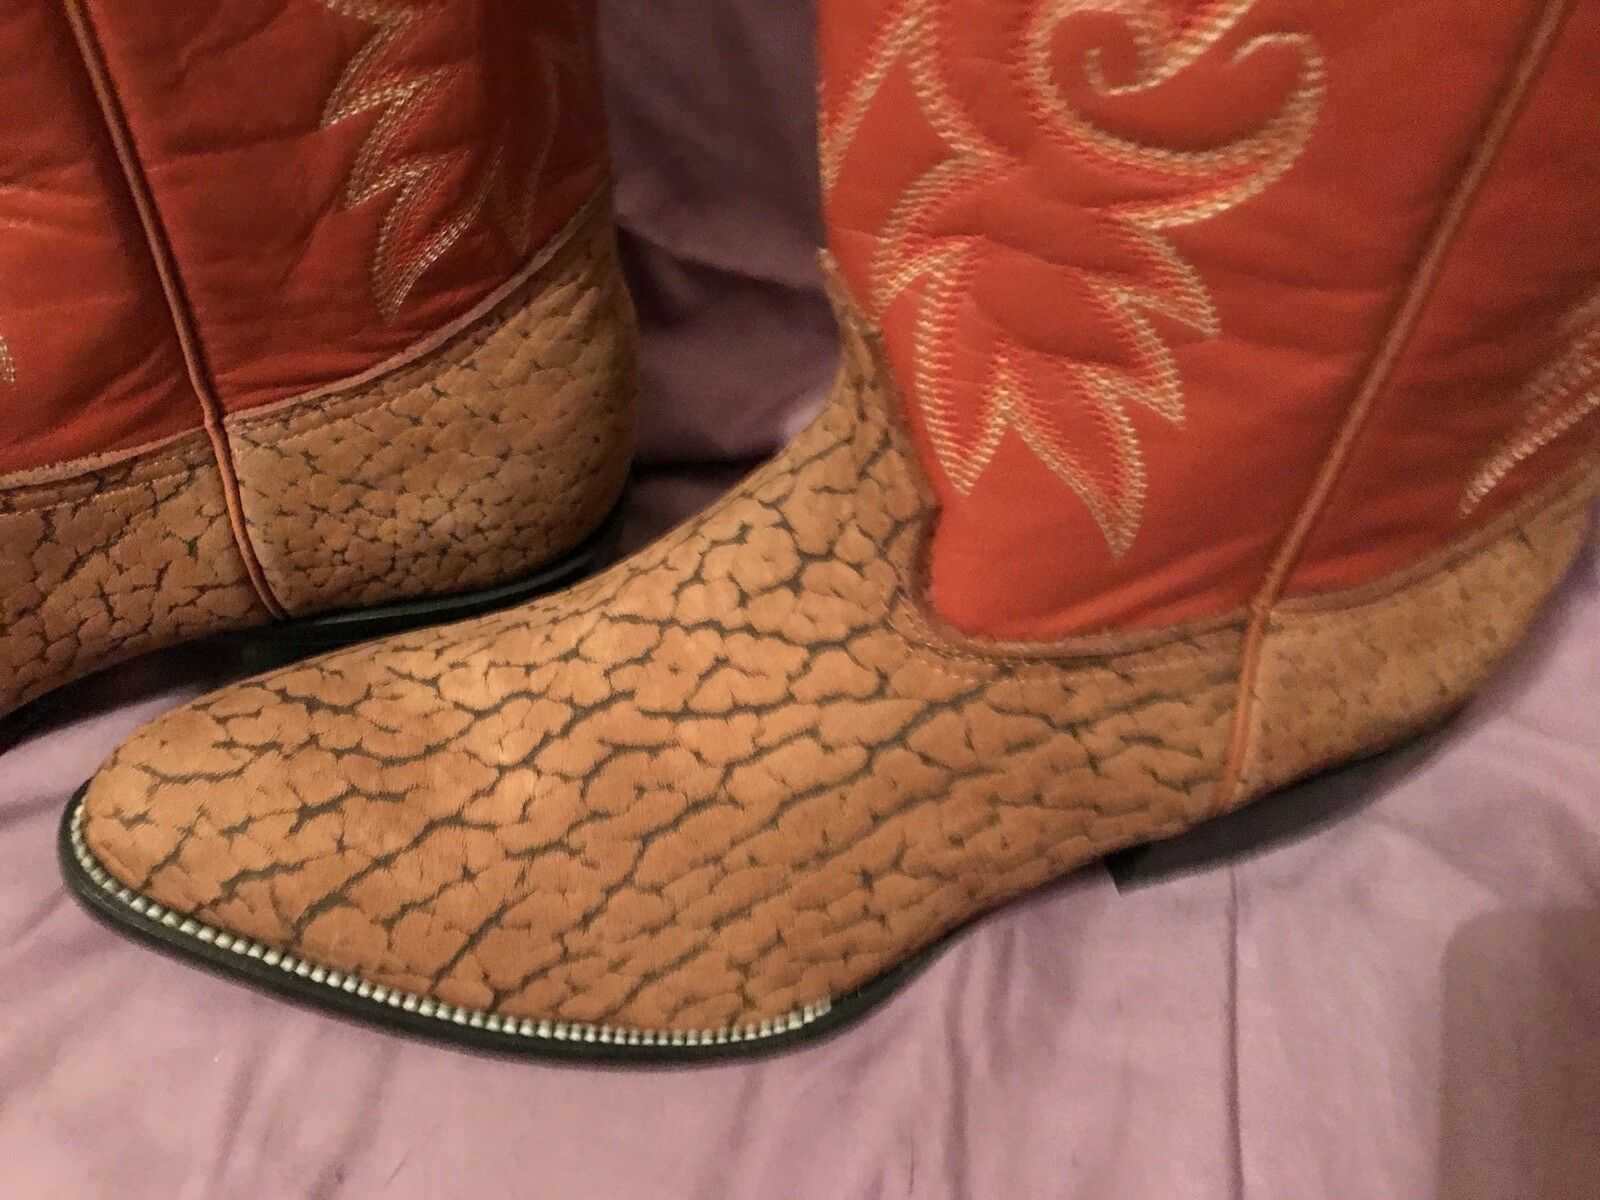 JEVER Cowboy Western Handcrafted Quilted Caramel Mens Boots Size 11 EE NEW W BOX